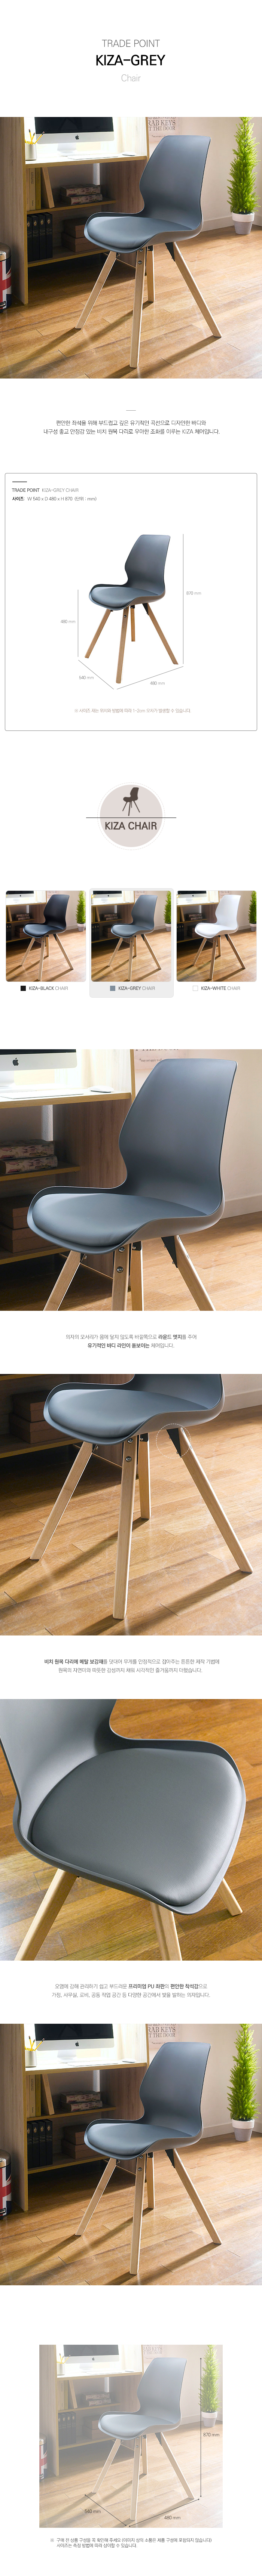 Kiza-Grey_Chair_180305.jpg